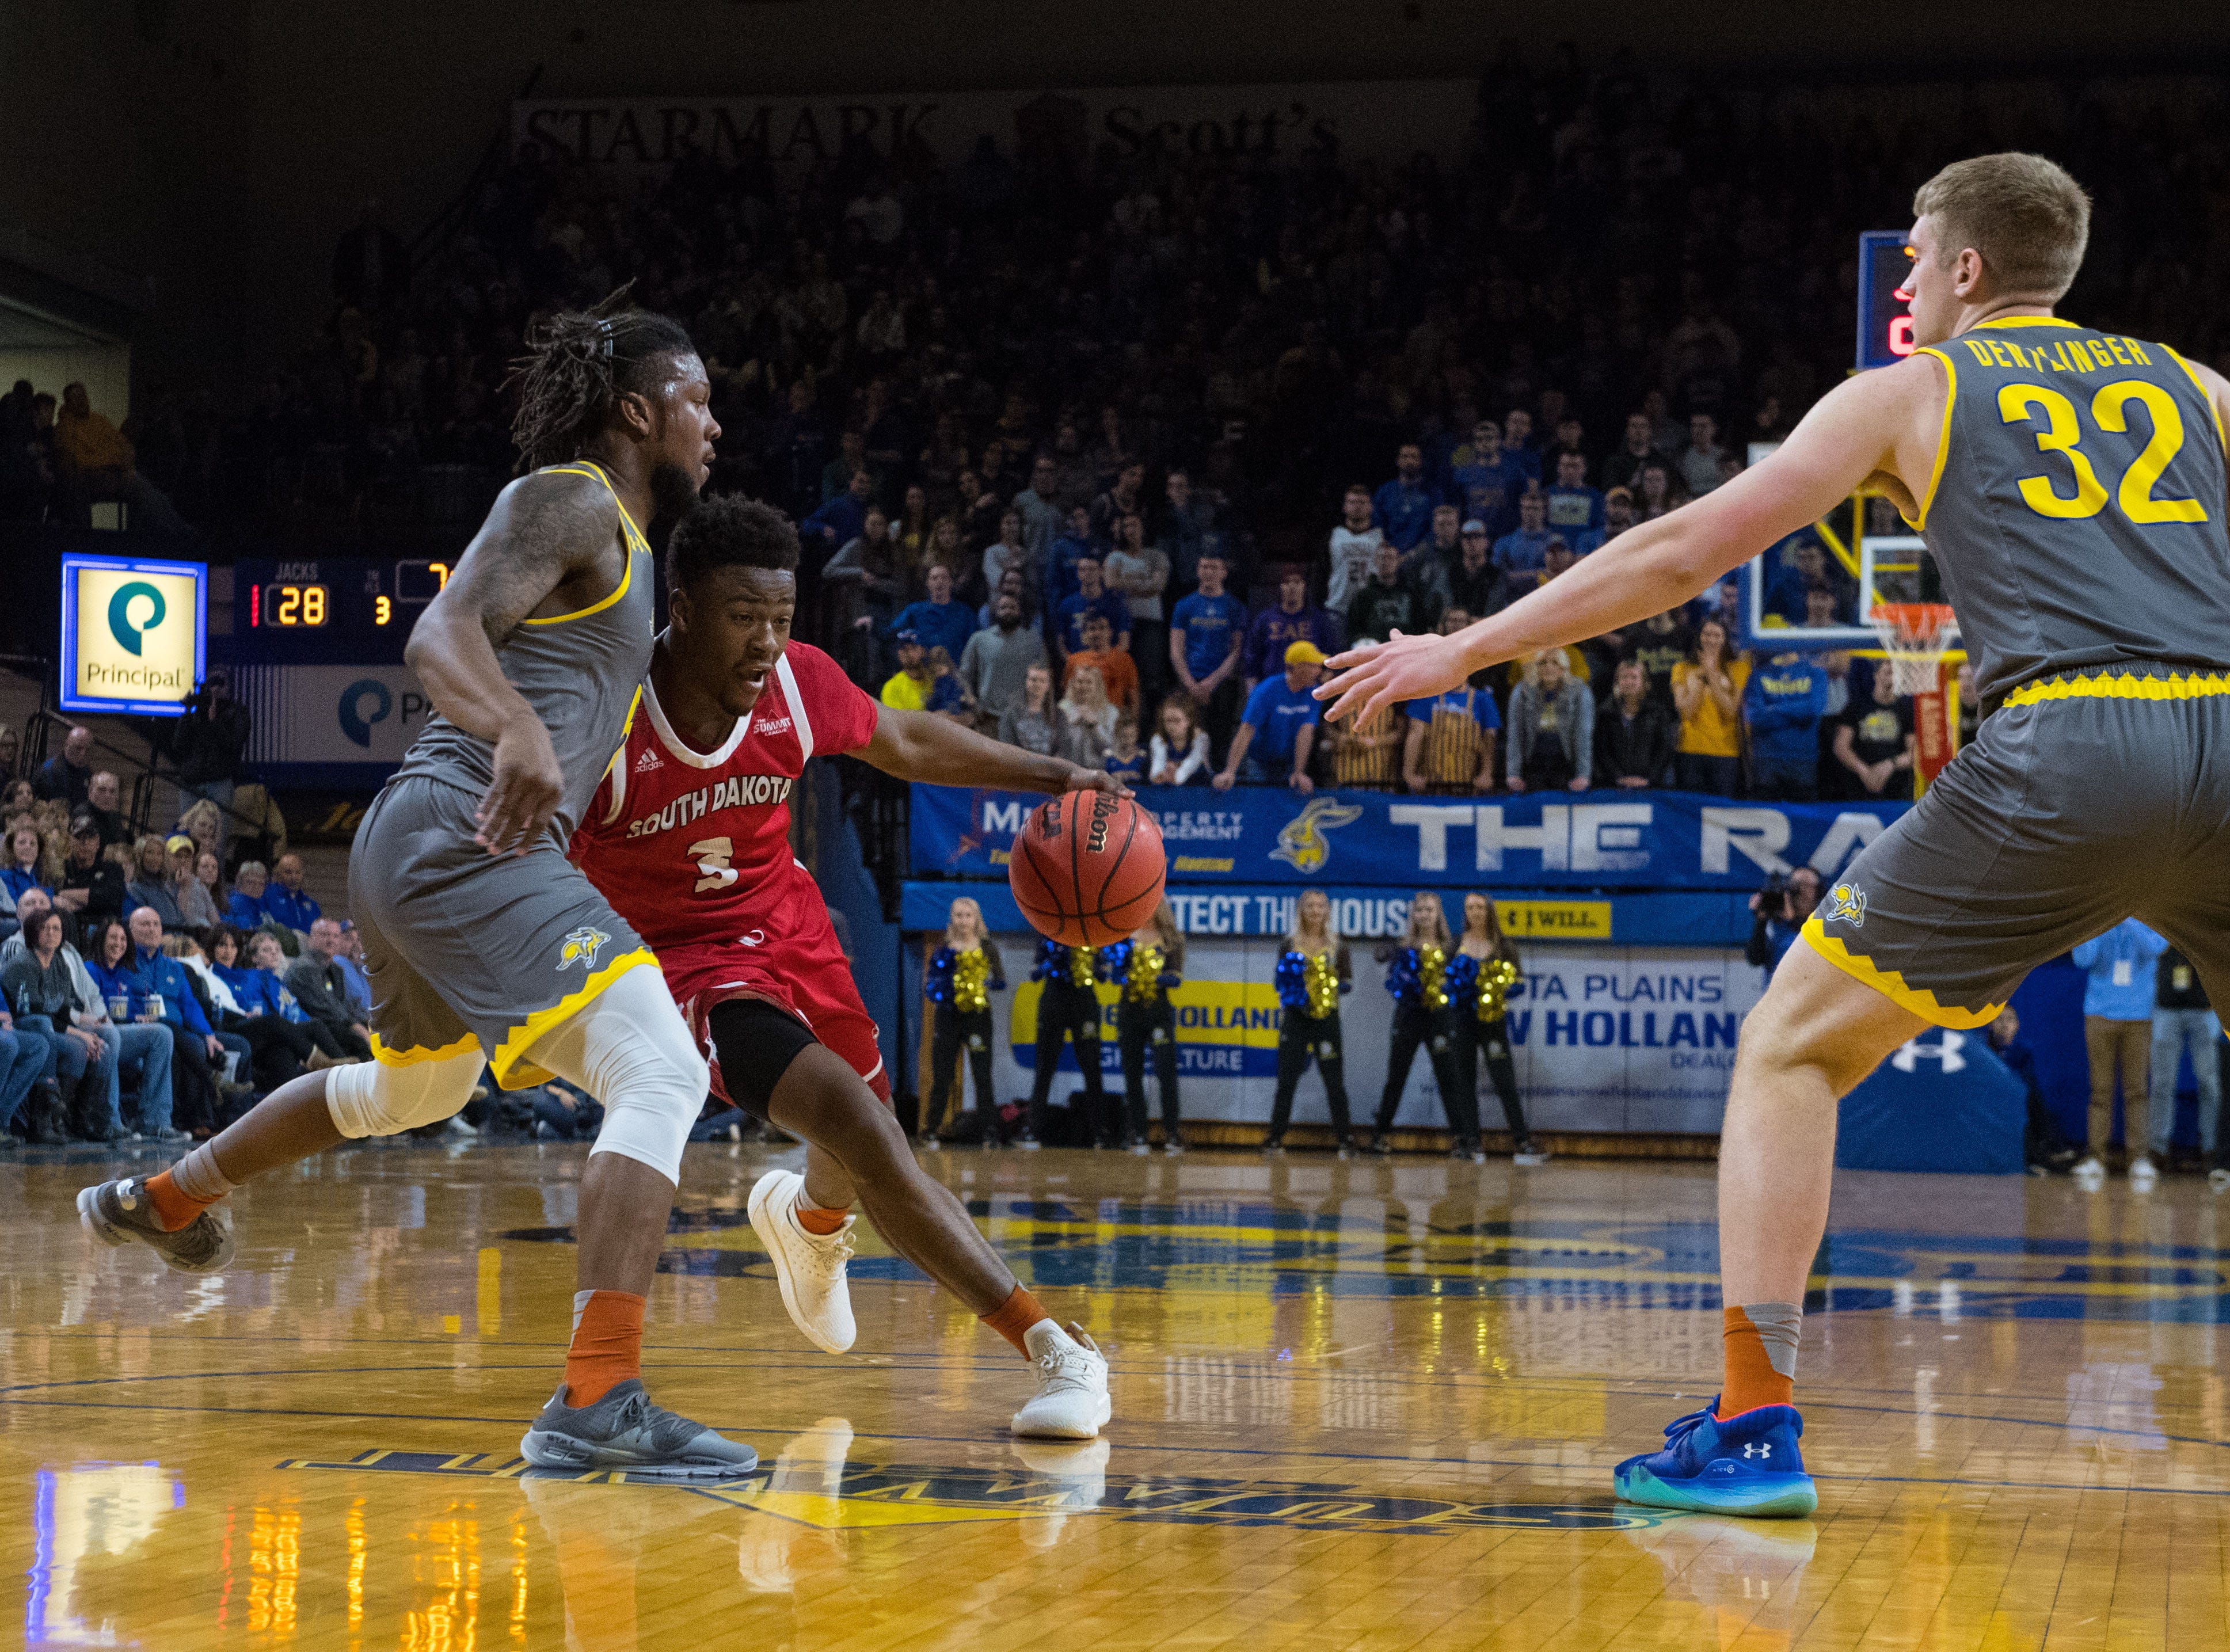 USD's Triston Simpson (3) dribbles the ball past SDSU players during a game, Saturday, Feb. 23, 2019 in Brookings, S.D.